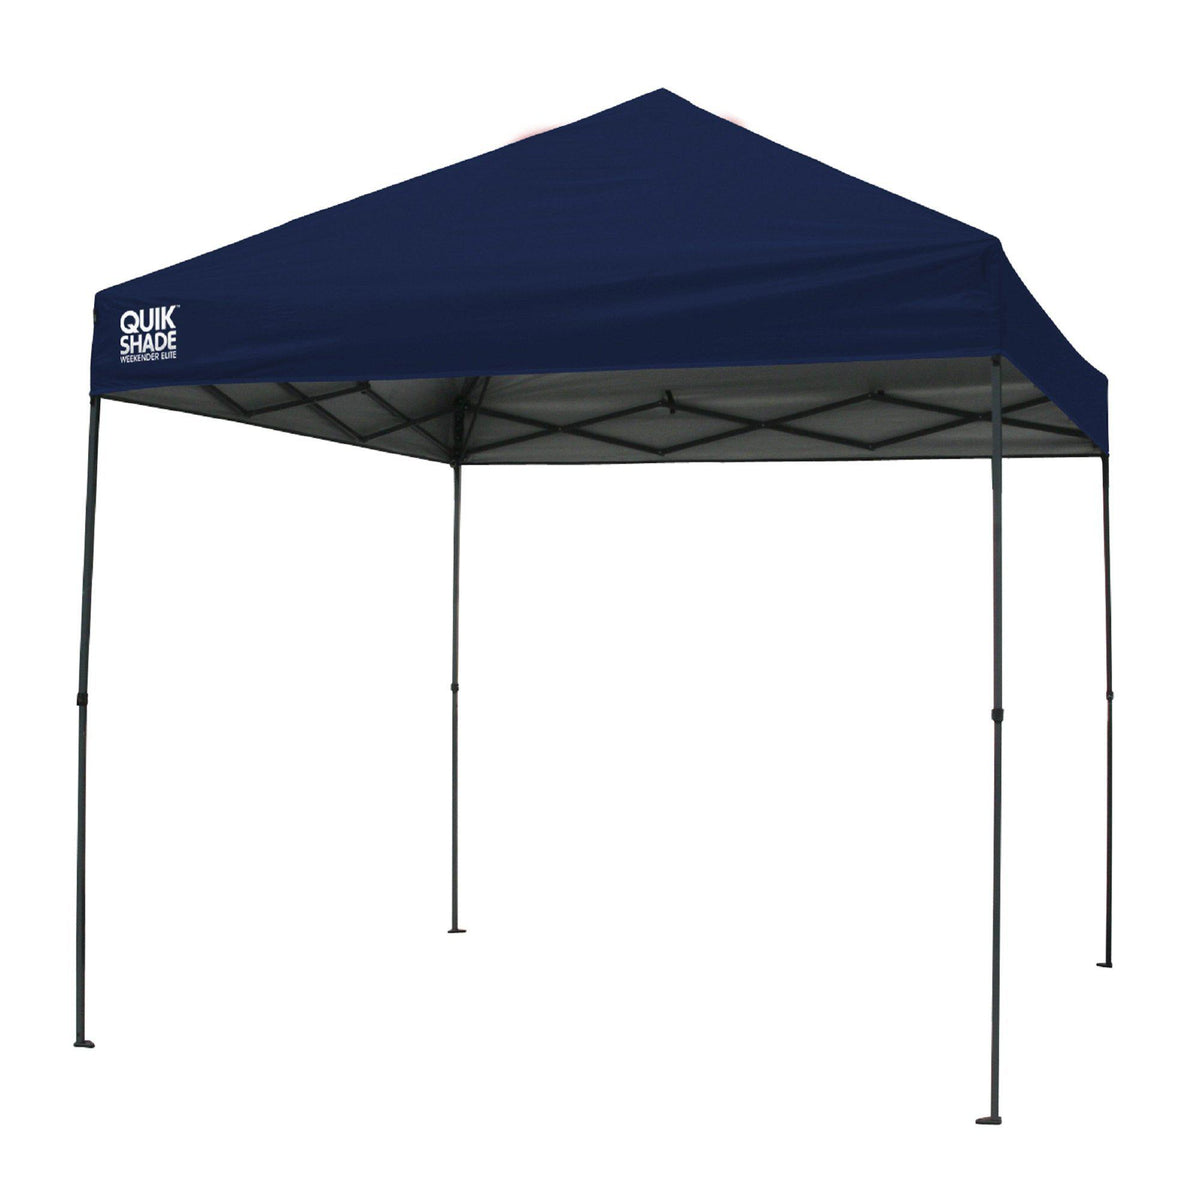 Quik Shade Weekender Elite WE100 10'x10' Instant Canopy - Navy Blue